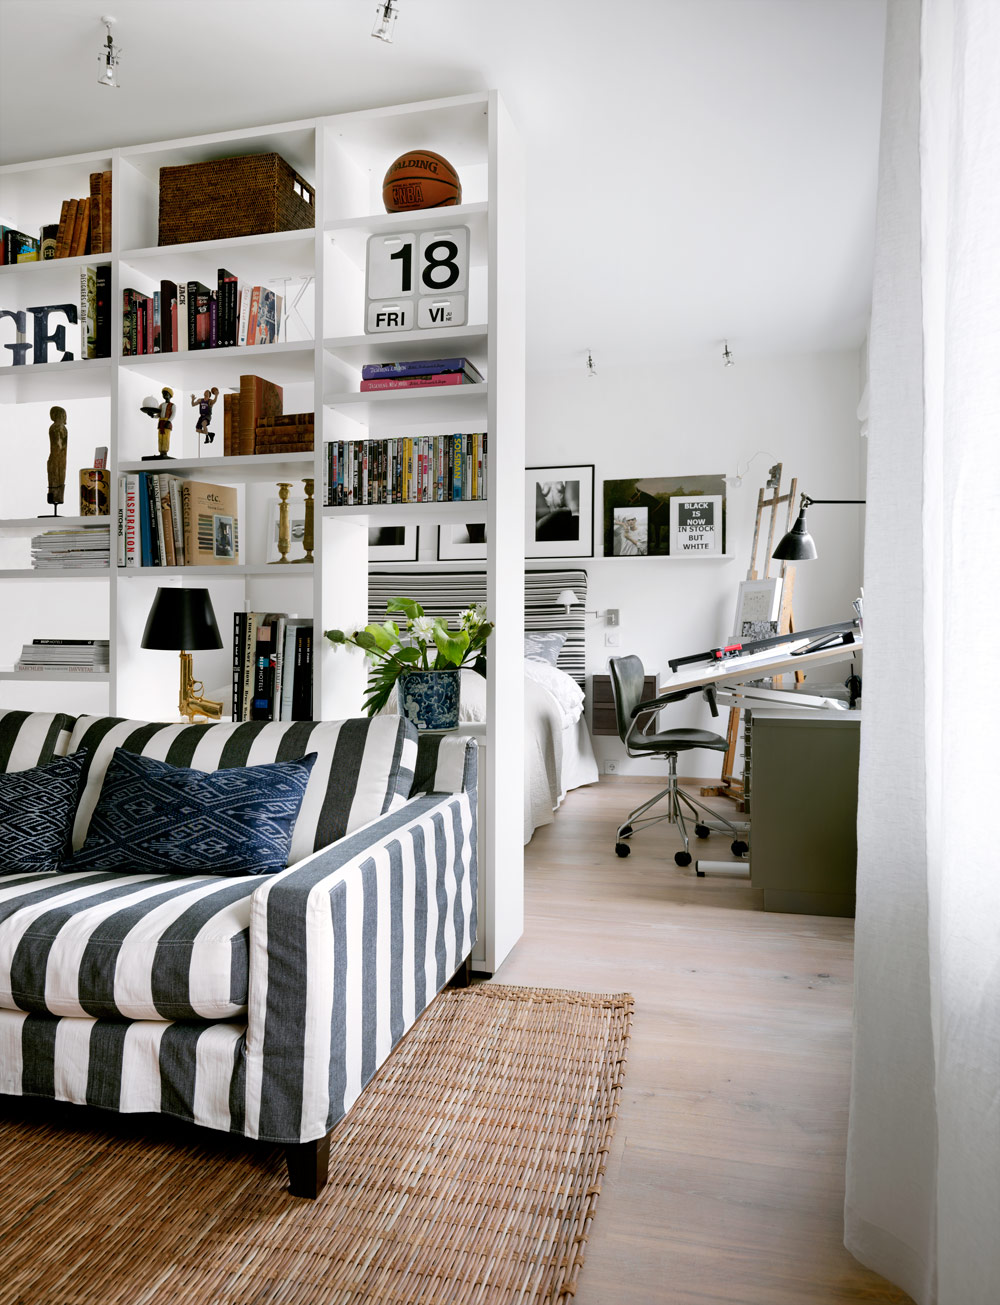 Small Flat Living Room Interior Design: BRIGHT HOME: Living Well In A Small Apartment